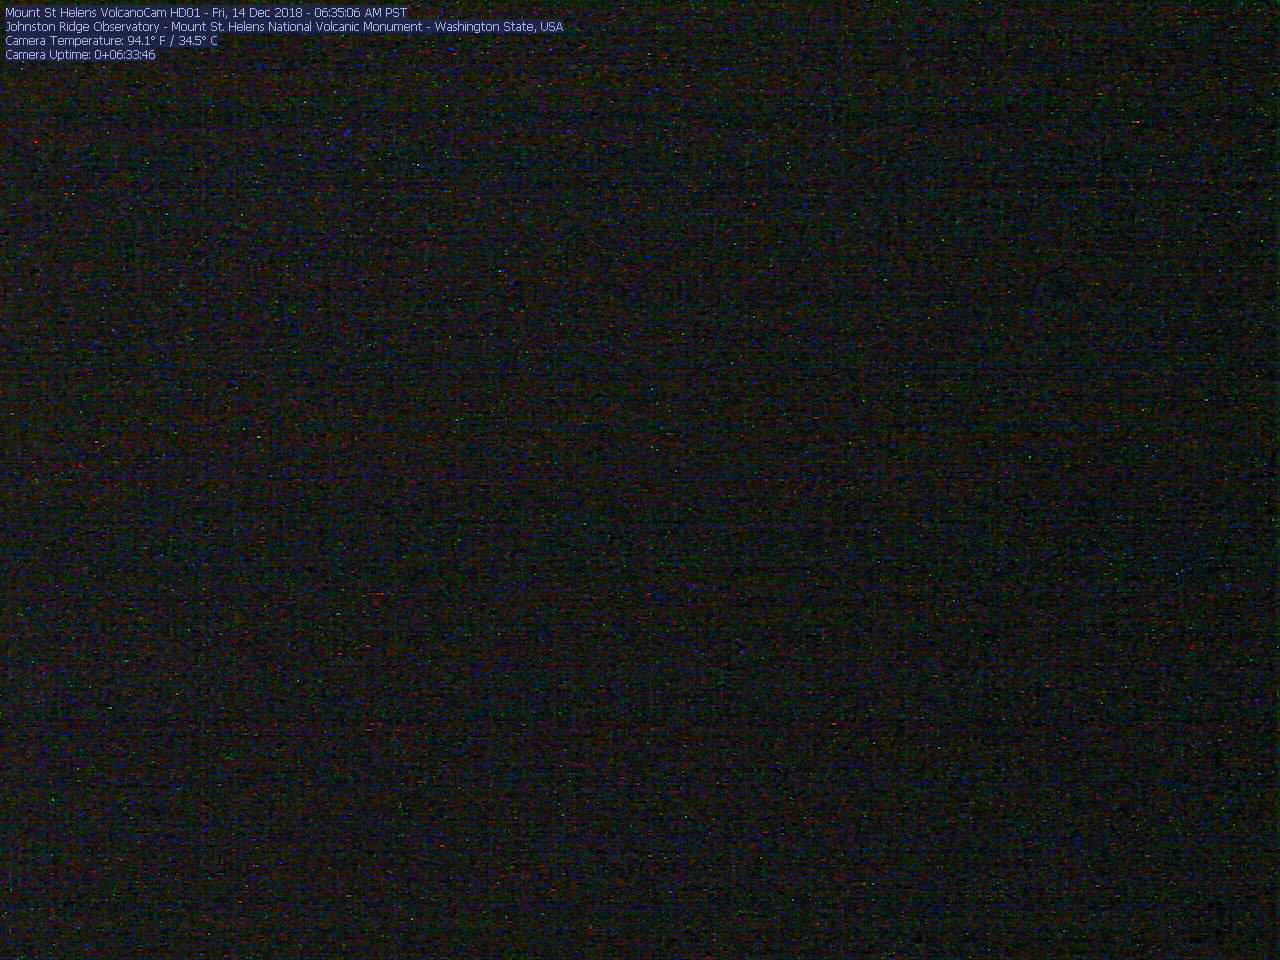 Click for a larger web cam image of the Mount St. Helens Washington Volcanoes web cam